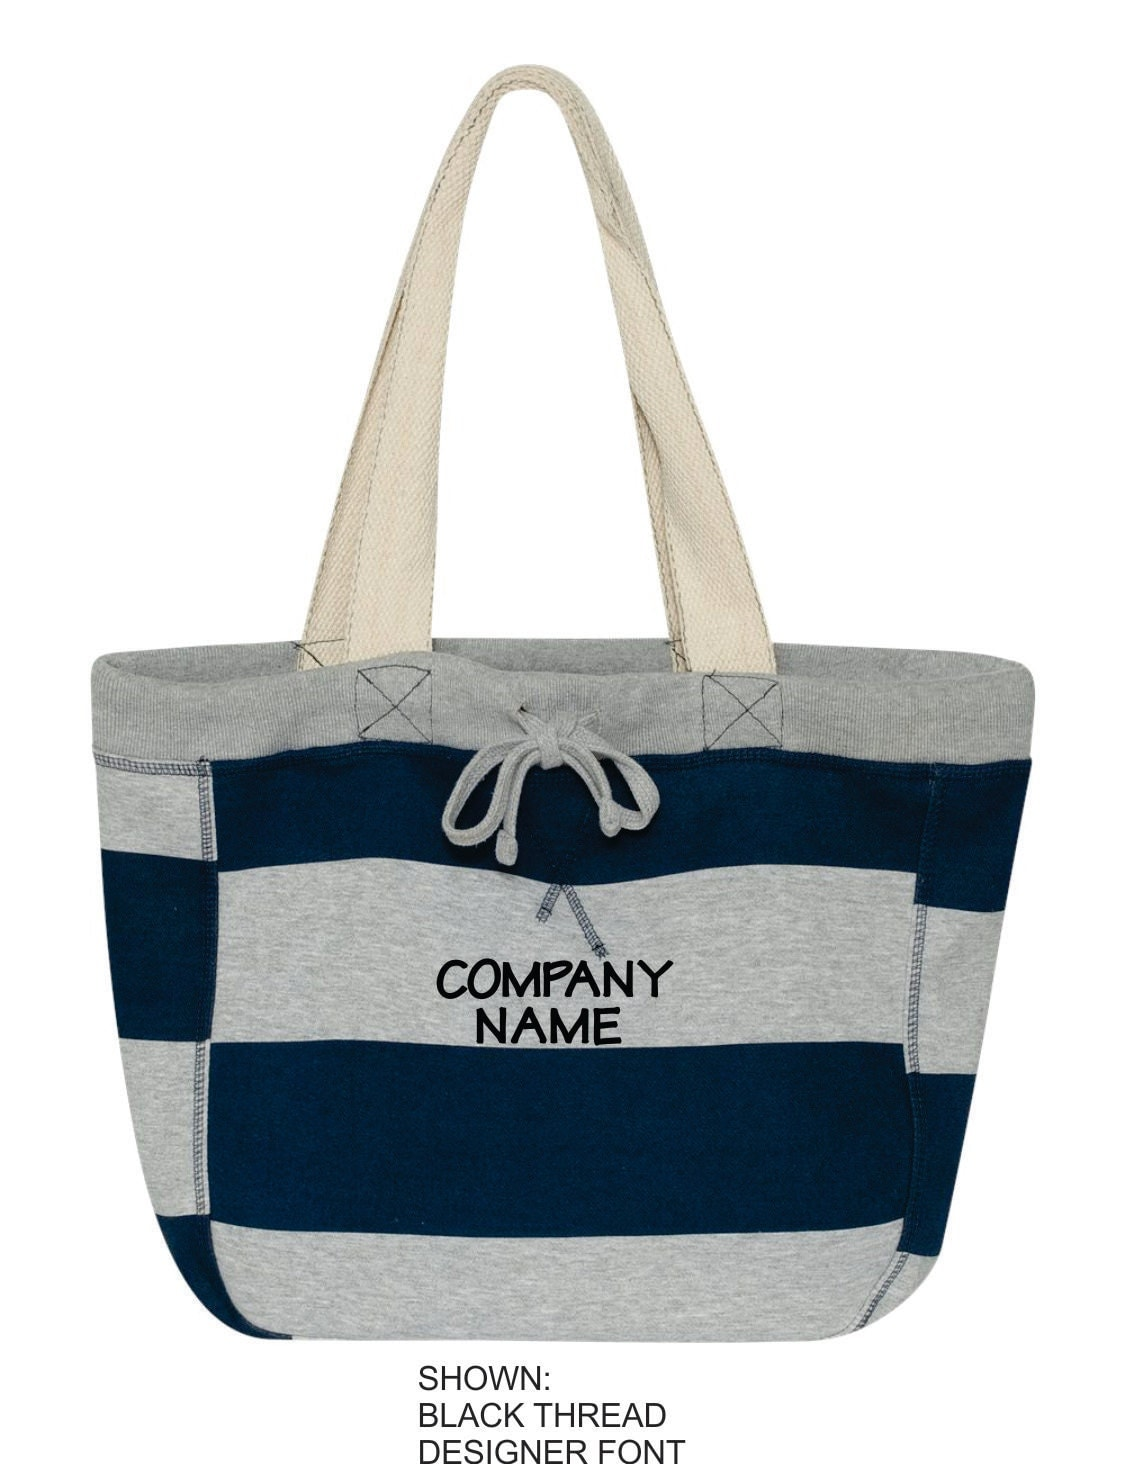 Personalized beach tote monogrammed company bag custom